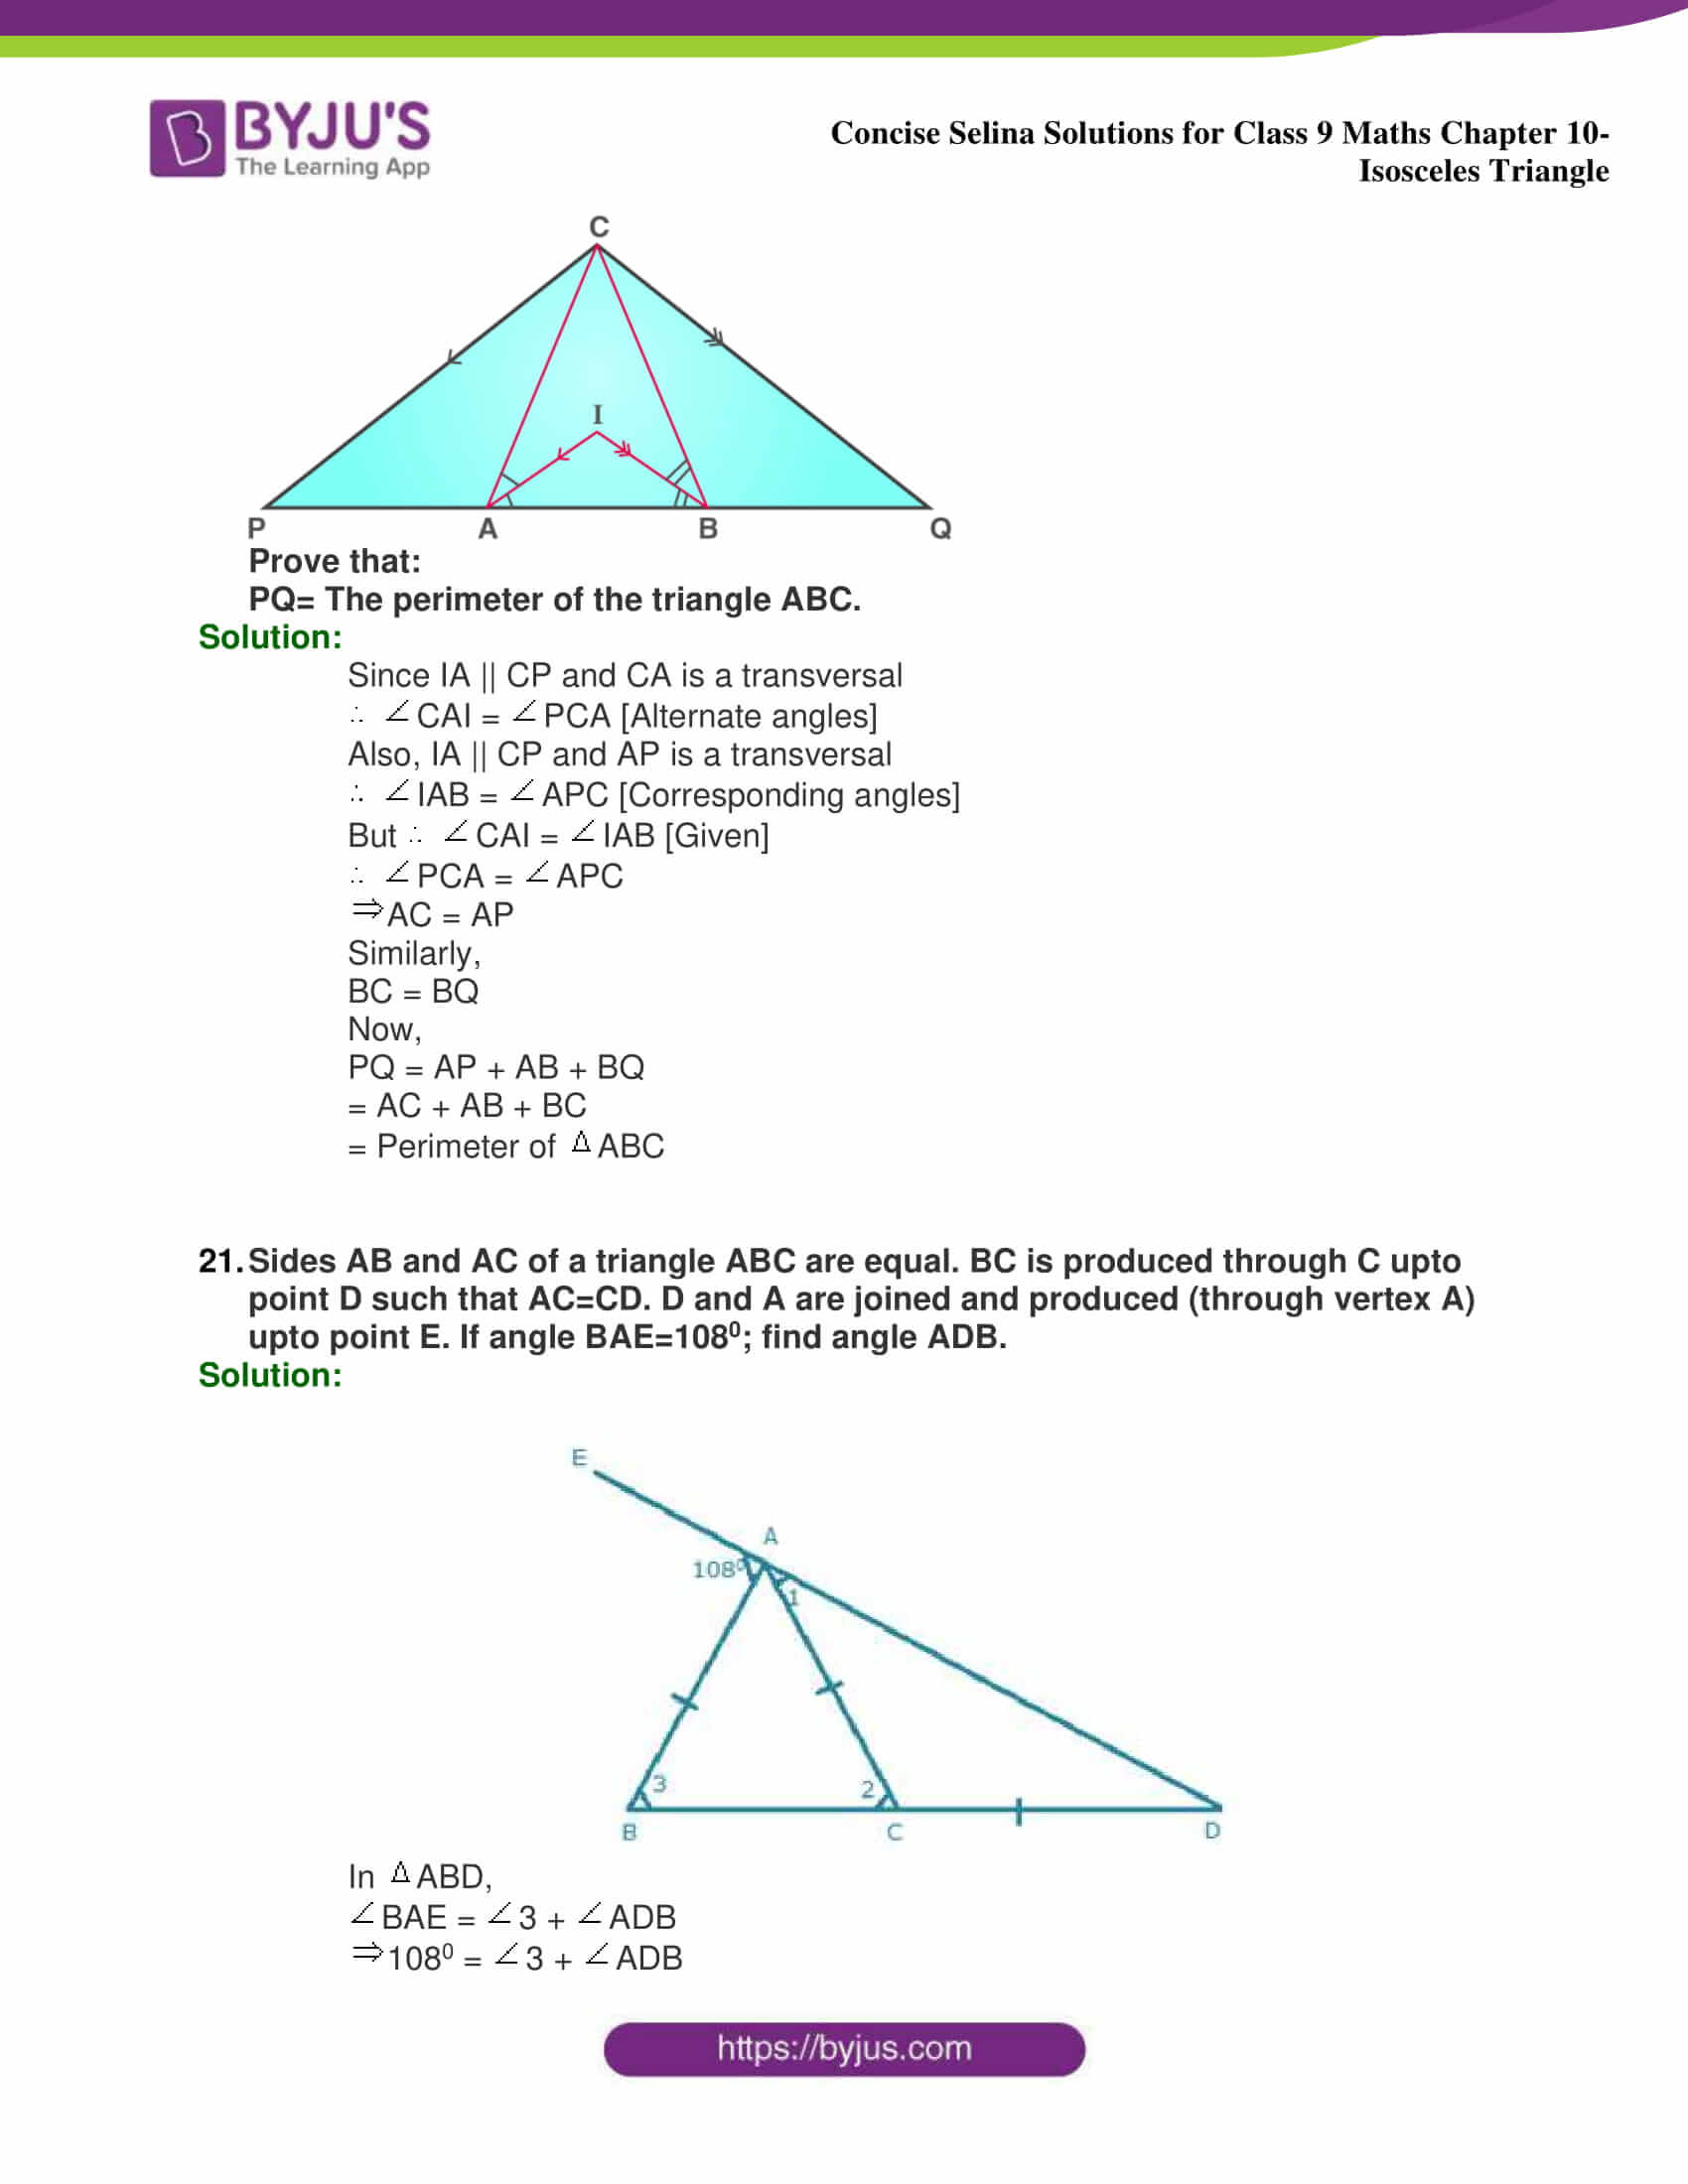 selina Solutions for Class 9 Maths Chapter 10 part 39